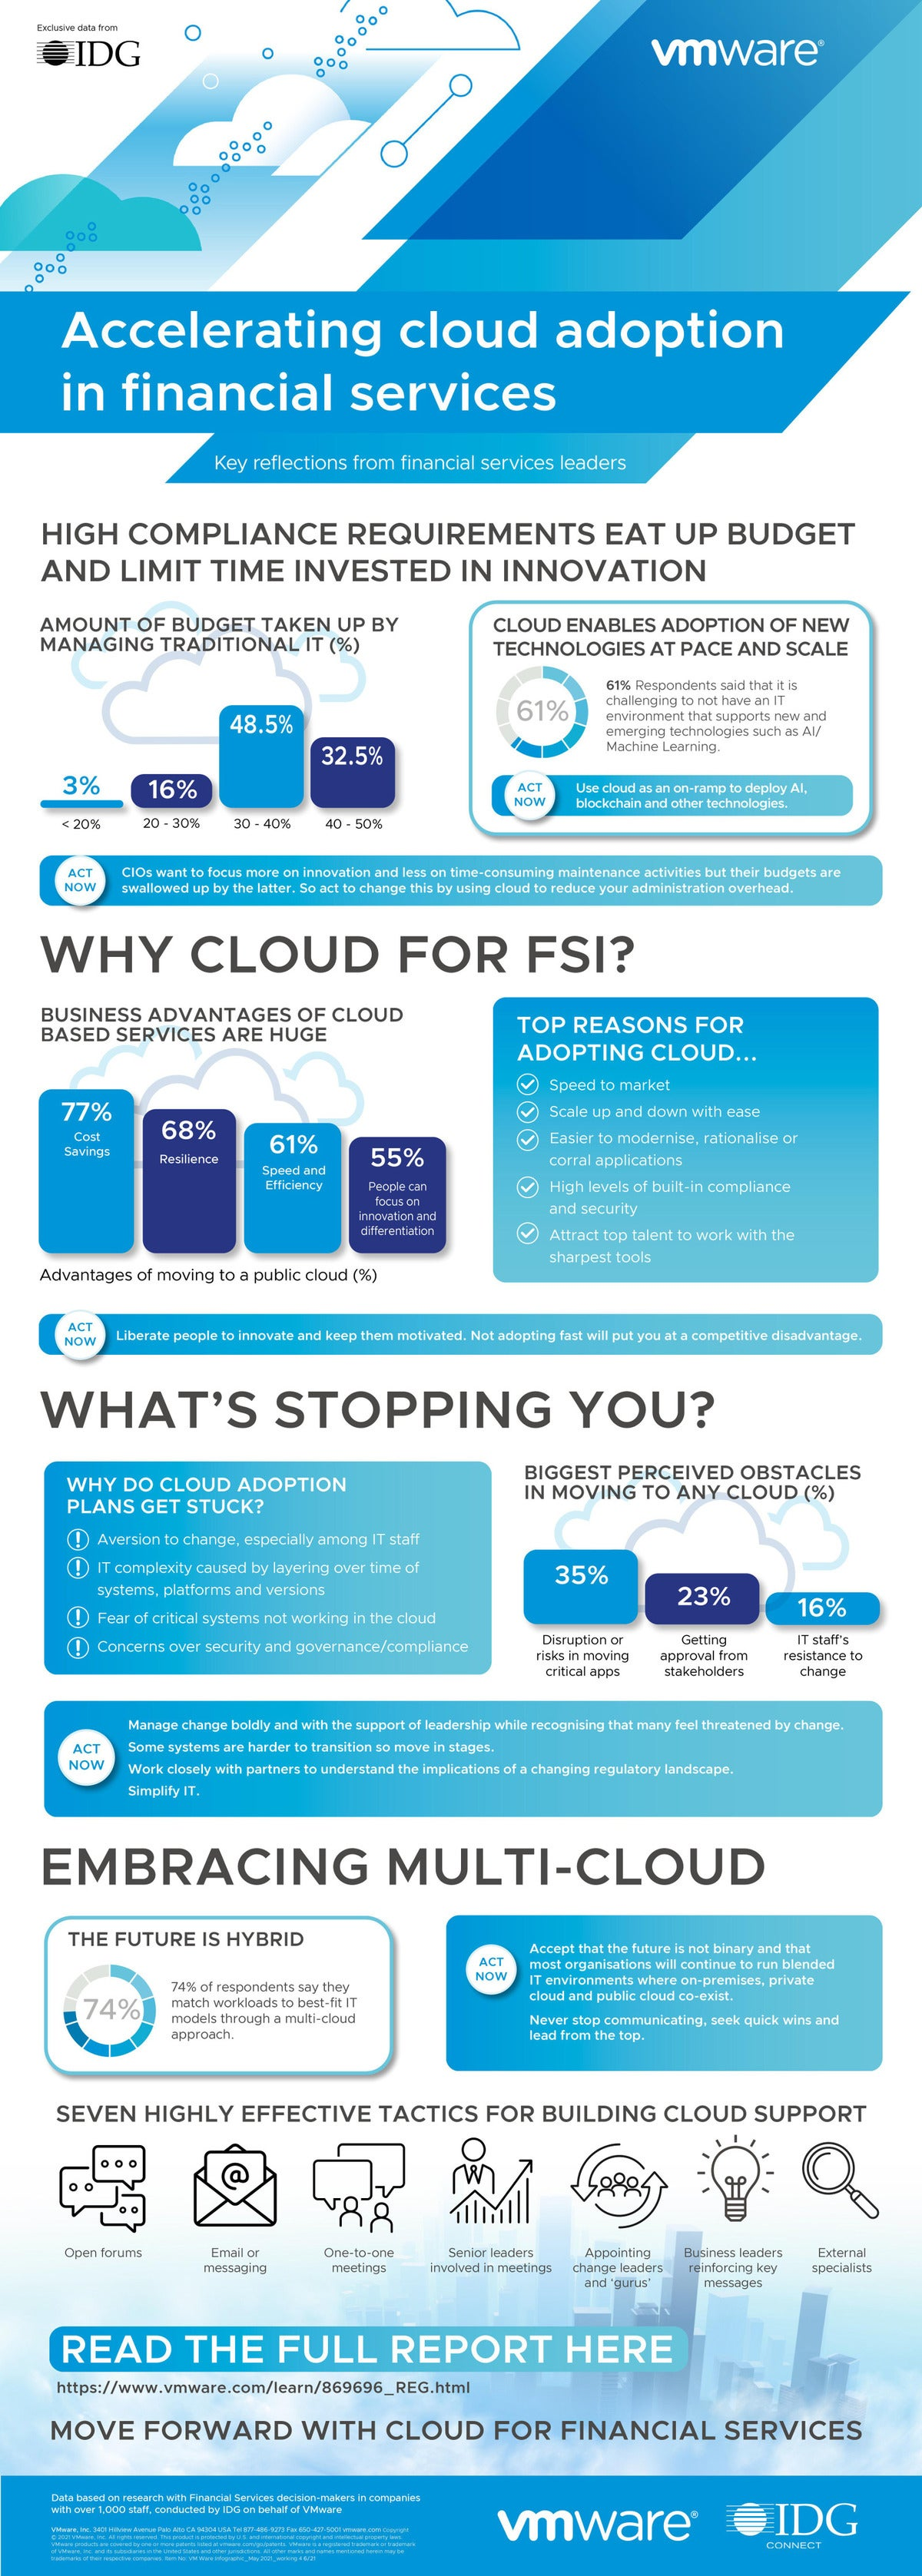 Accelerating cloud adoption in financial services